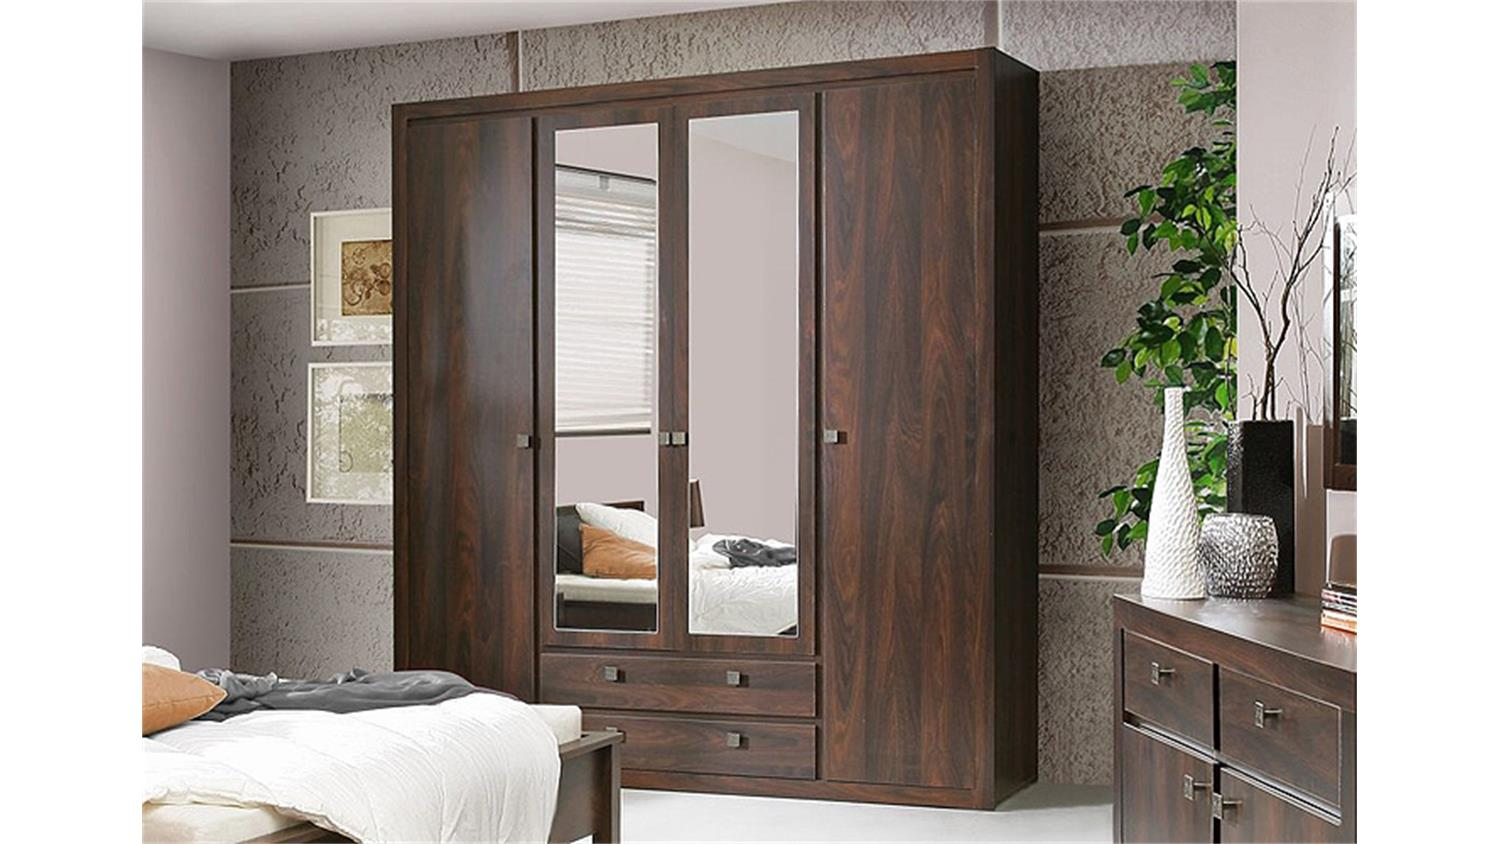 schrank eiche hifischrank u tvschrank eiche gelt im dnisches bettenlager with schrank eiche. Black Bedroom Furniture Sets. Home Design Ideas